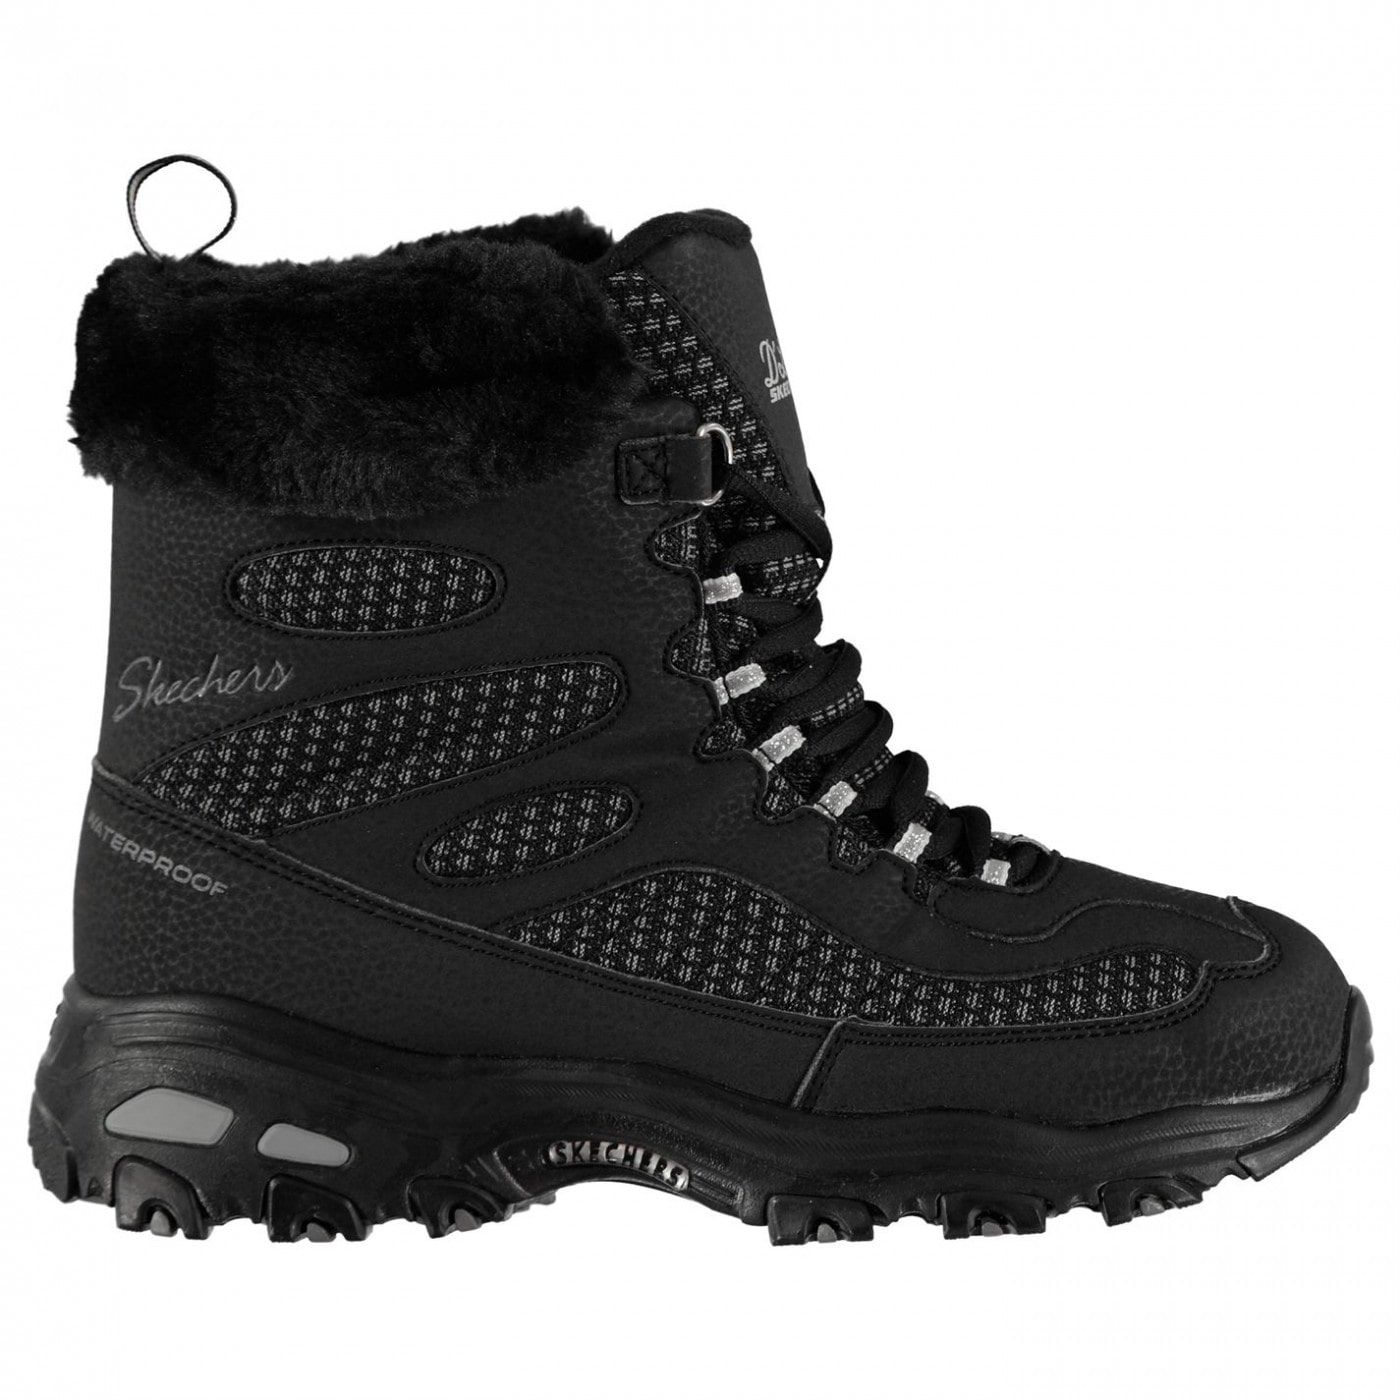 Skechers D'lites BC Ladies Boots